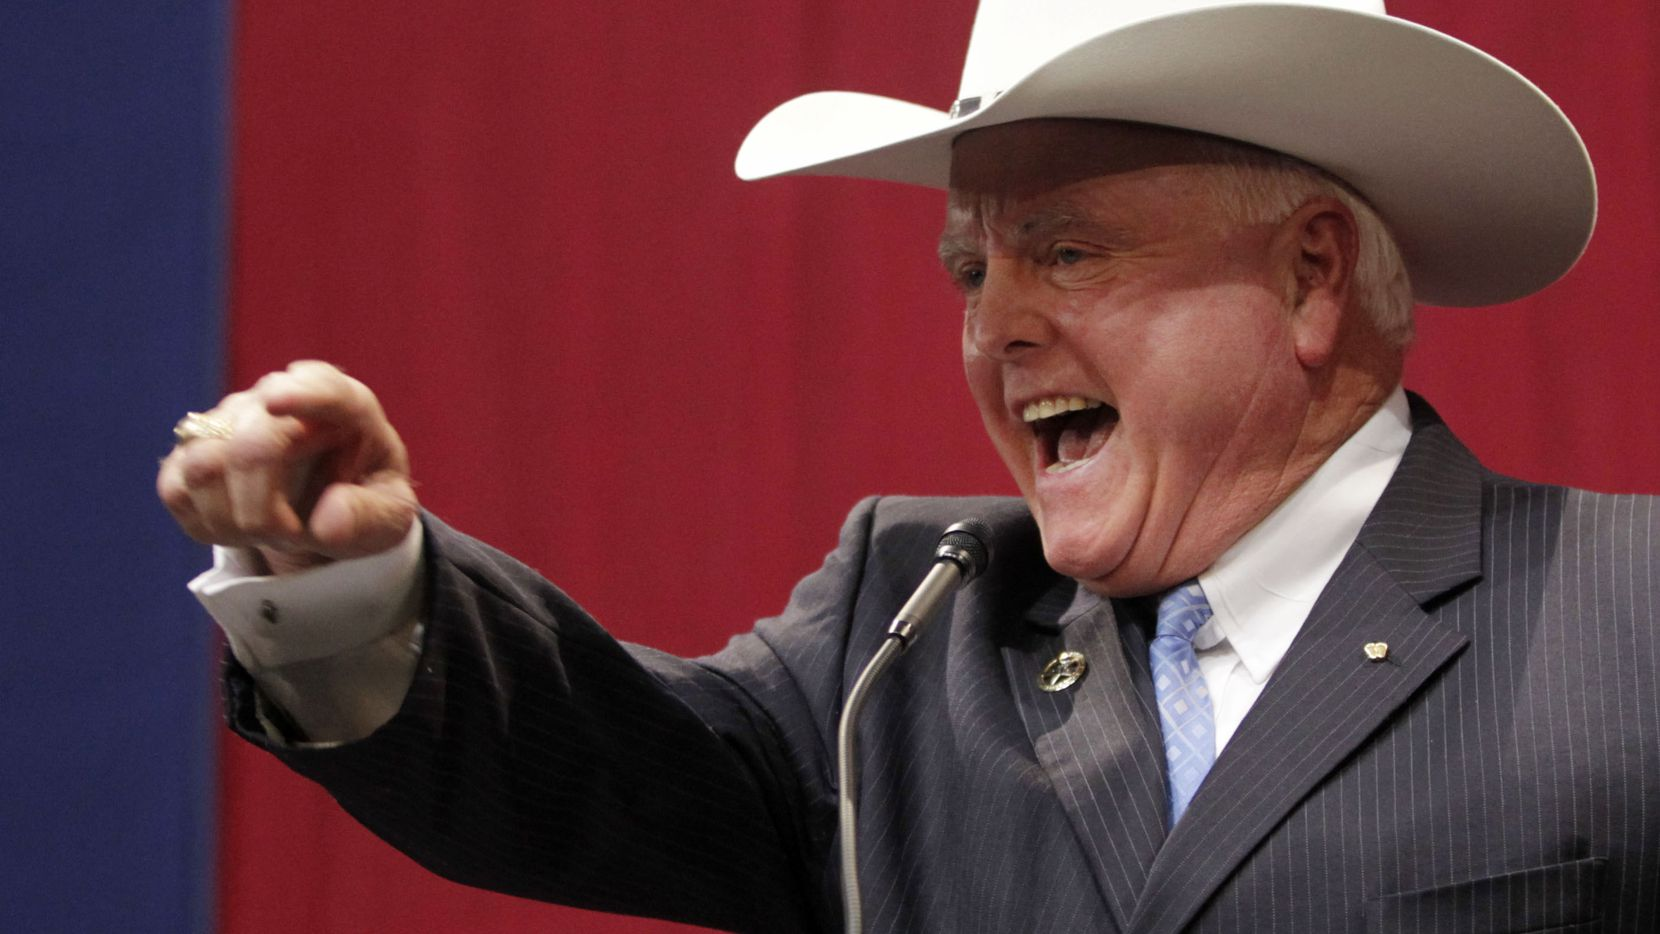 Agriculture Commissioner Sid Miller is going to advise Donald Trump on agriculture.